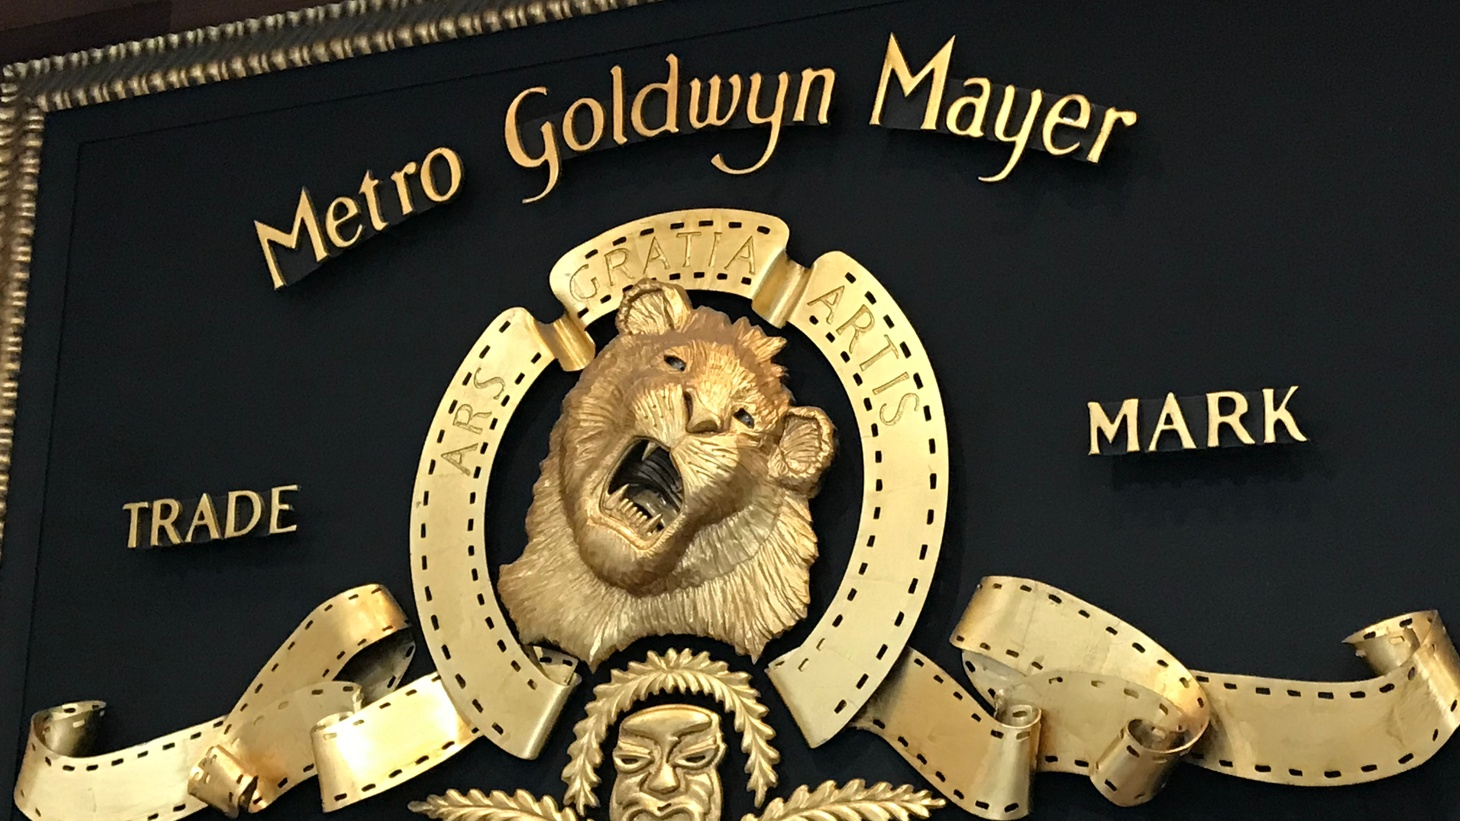 MGM will come under the ownership of Amazon in a $8.45 billion deal.